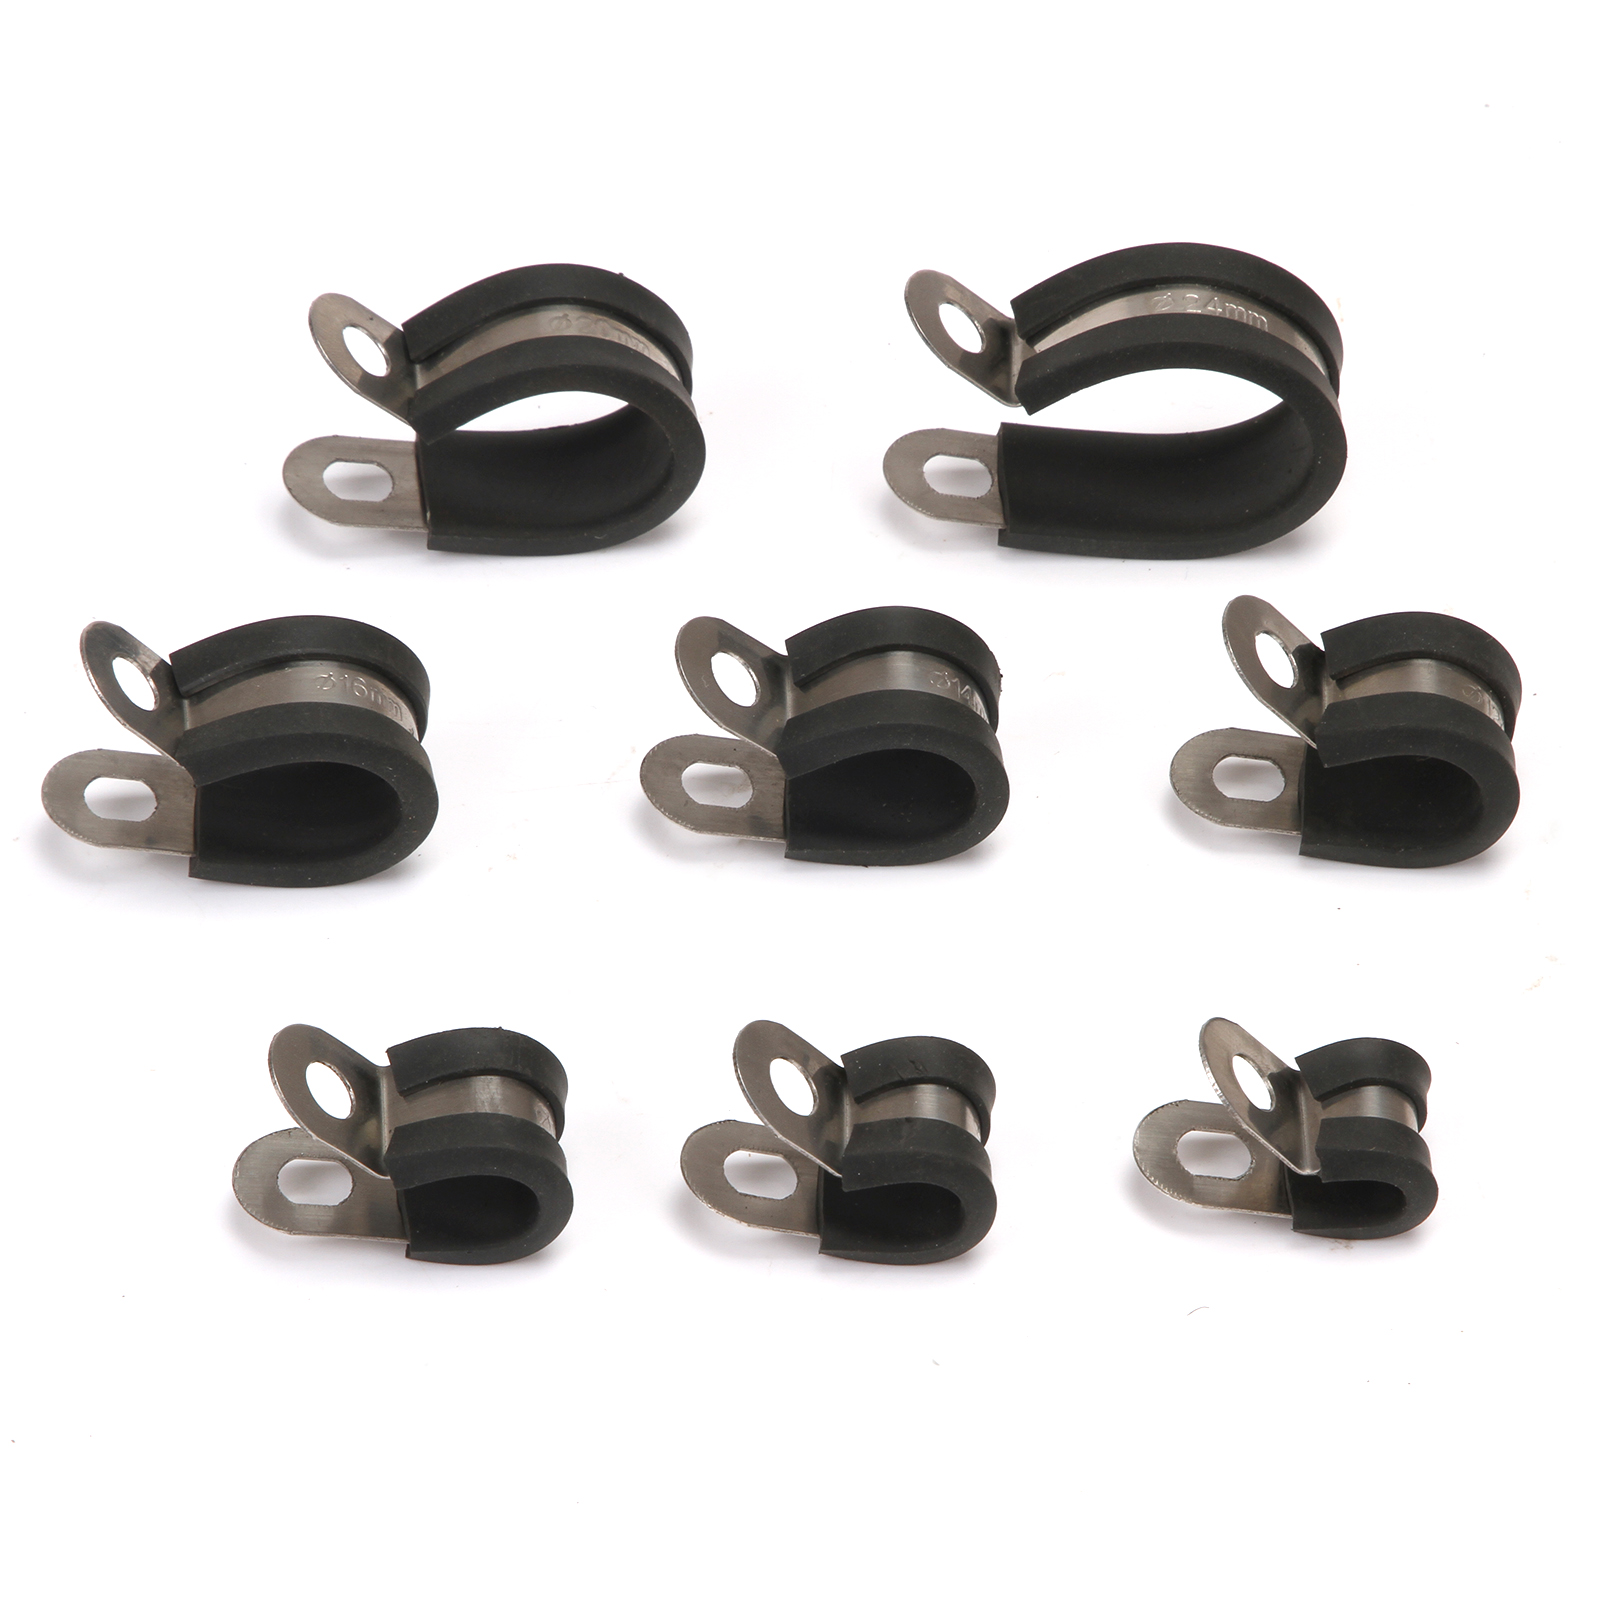 20mm 316 Stainless Steel W5 Cable rubber lined hose Clamp P CLIP PACK OF 10